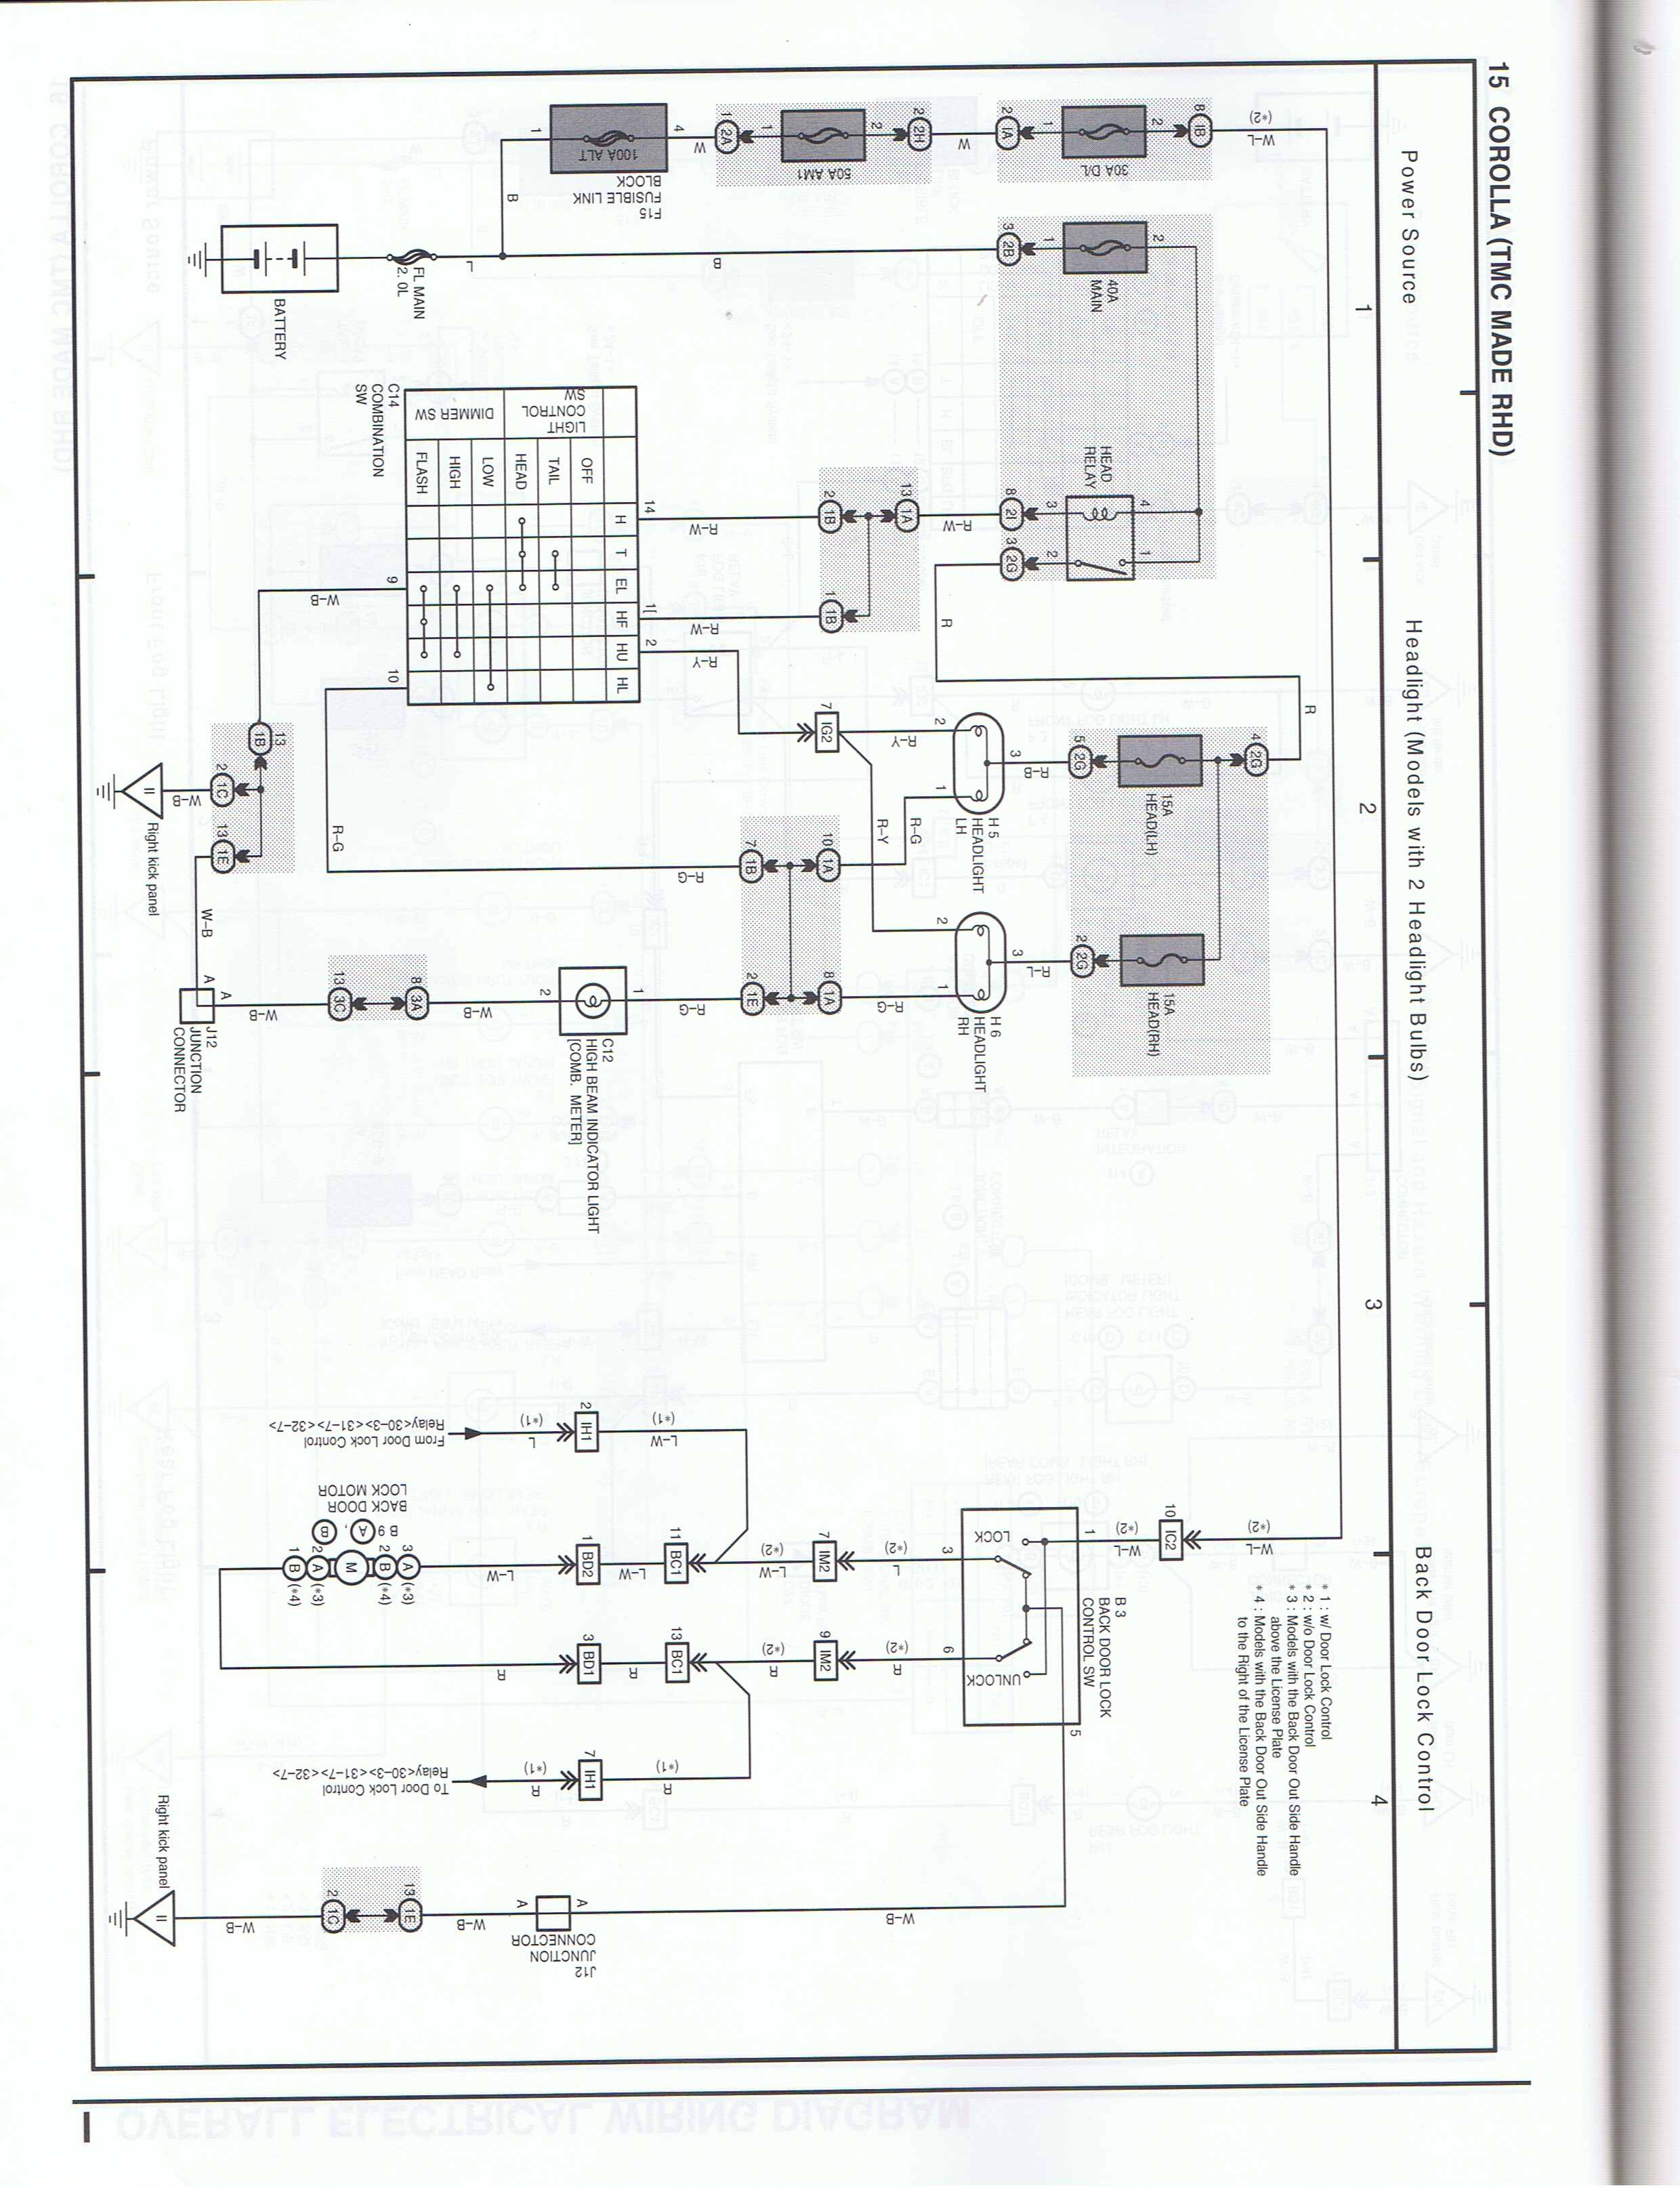 toyota ae111 wiring diagram toyota wiring diagrams 8030pfl headlight wiring diagram toyota ae wiring diagram 8030pfl headlight wiring diagram